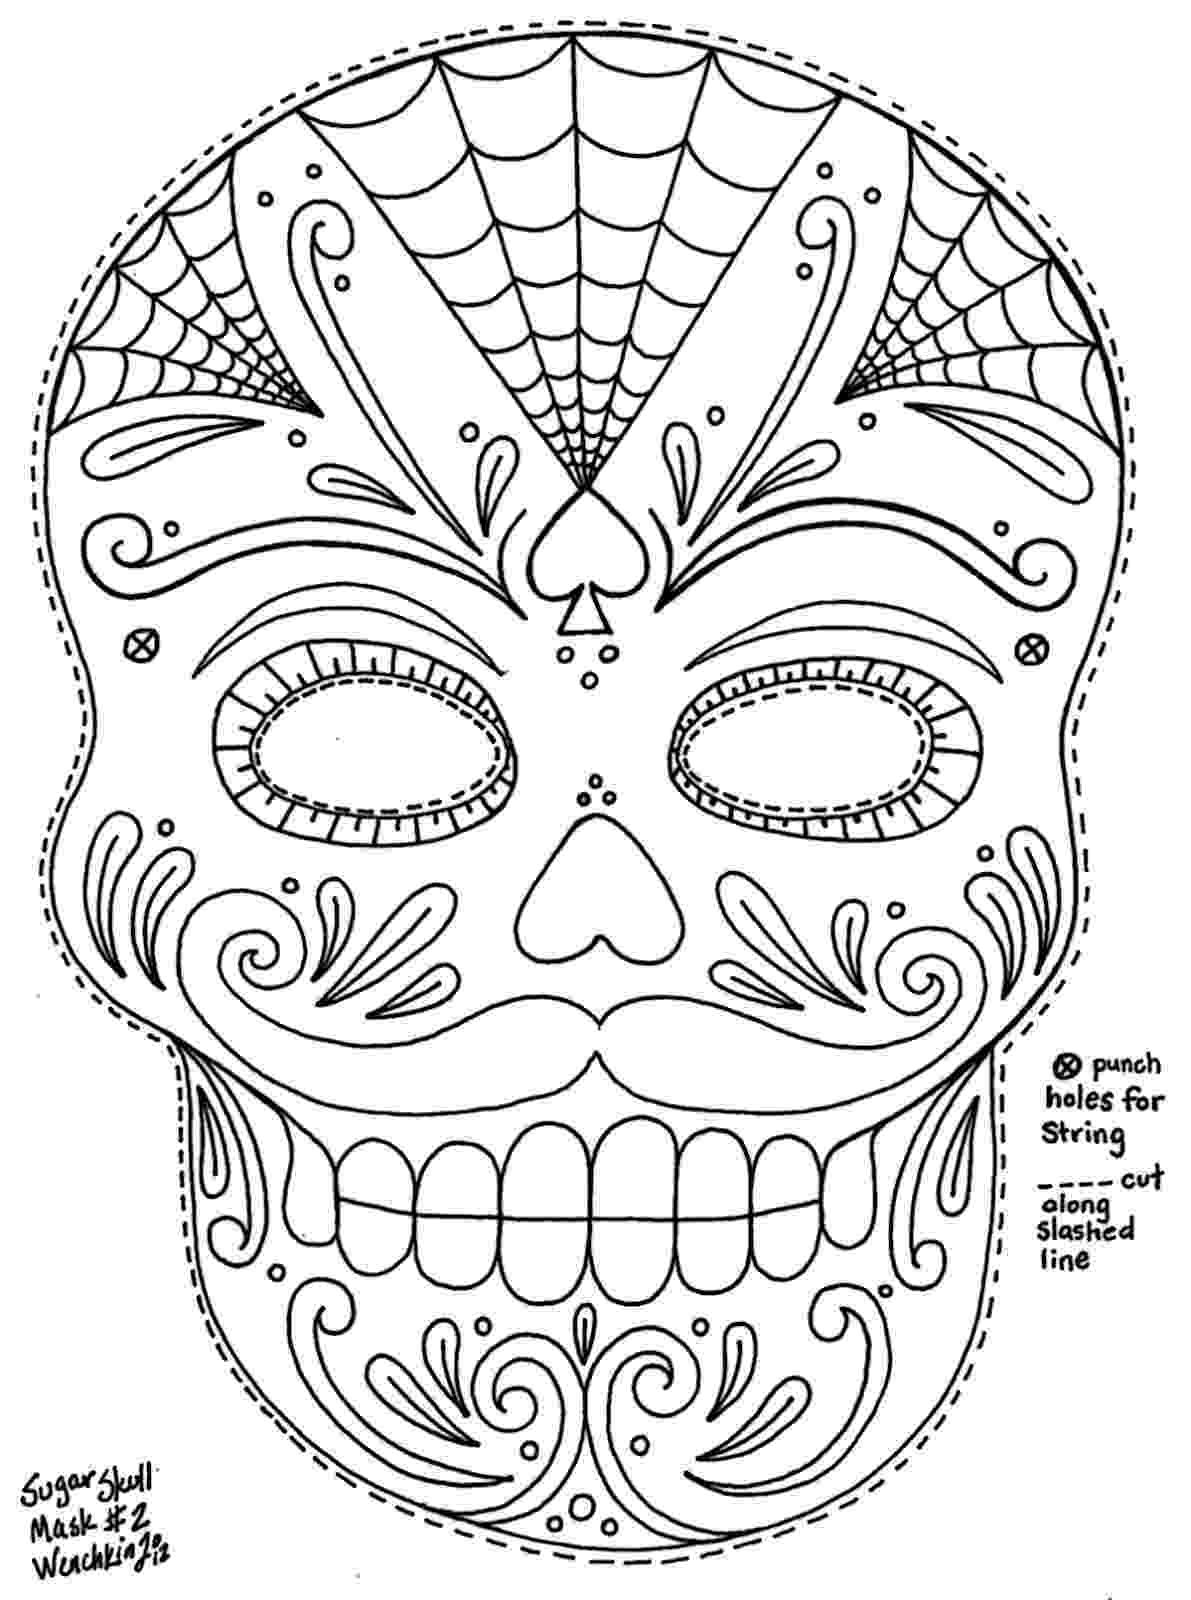 day of the dead printable pictures yucca flats nm wenchkin39s coloring pages moustached of day dead pictures the printable